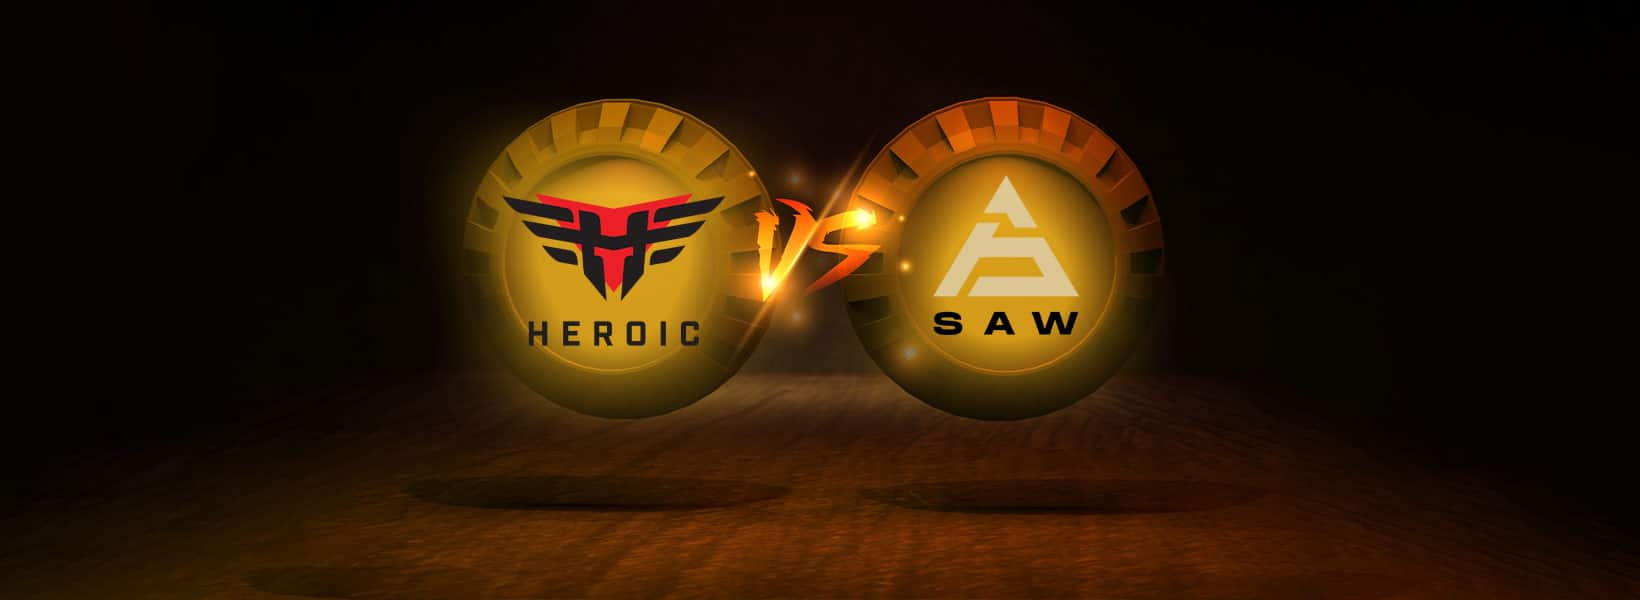 ponturi pariuri heroic vs saw